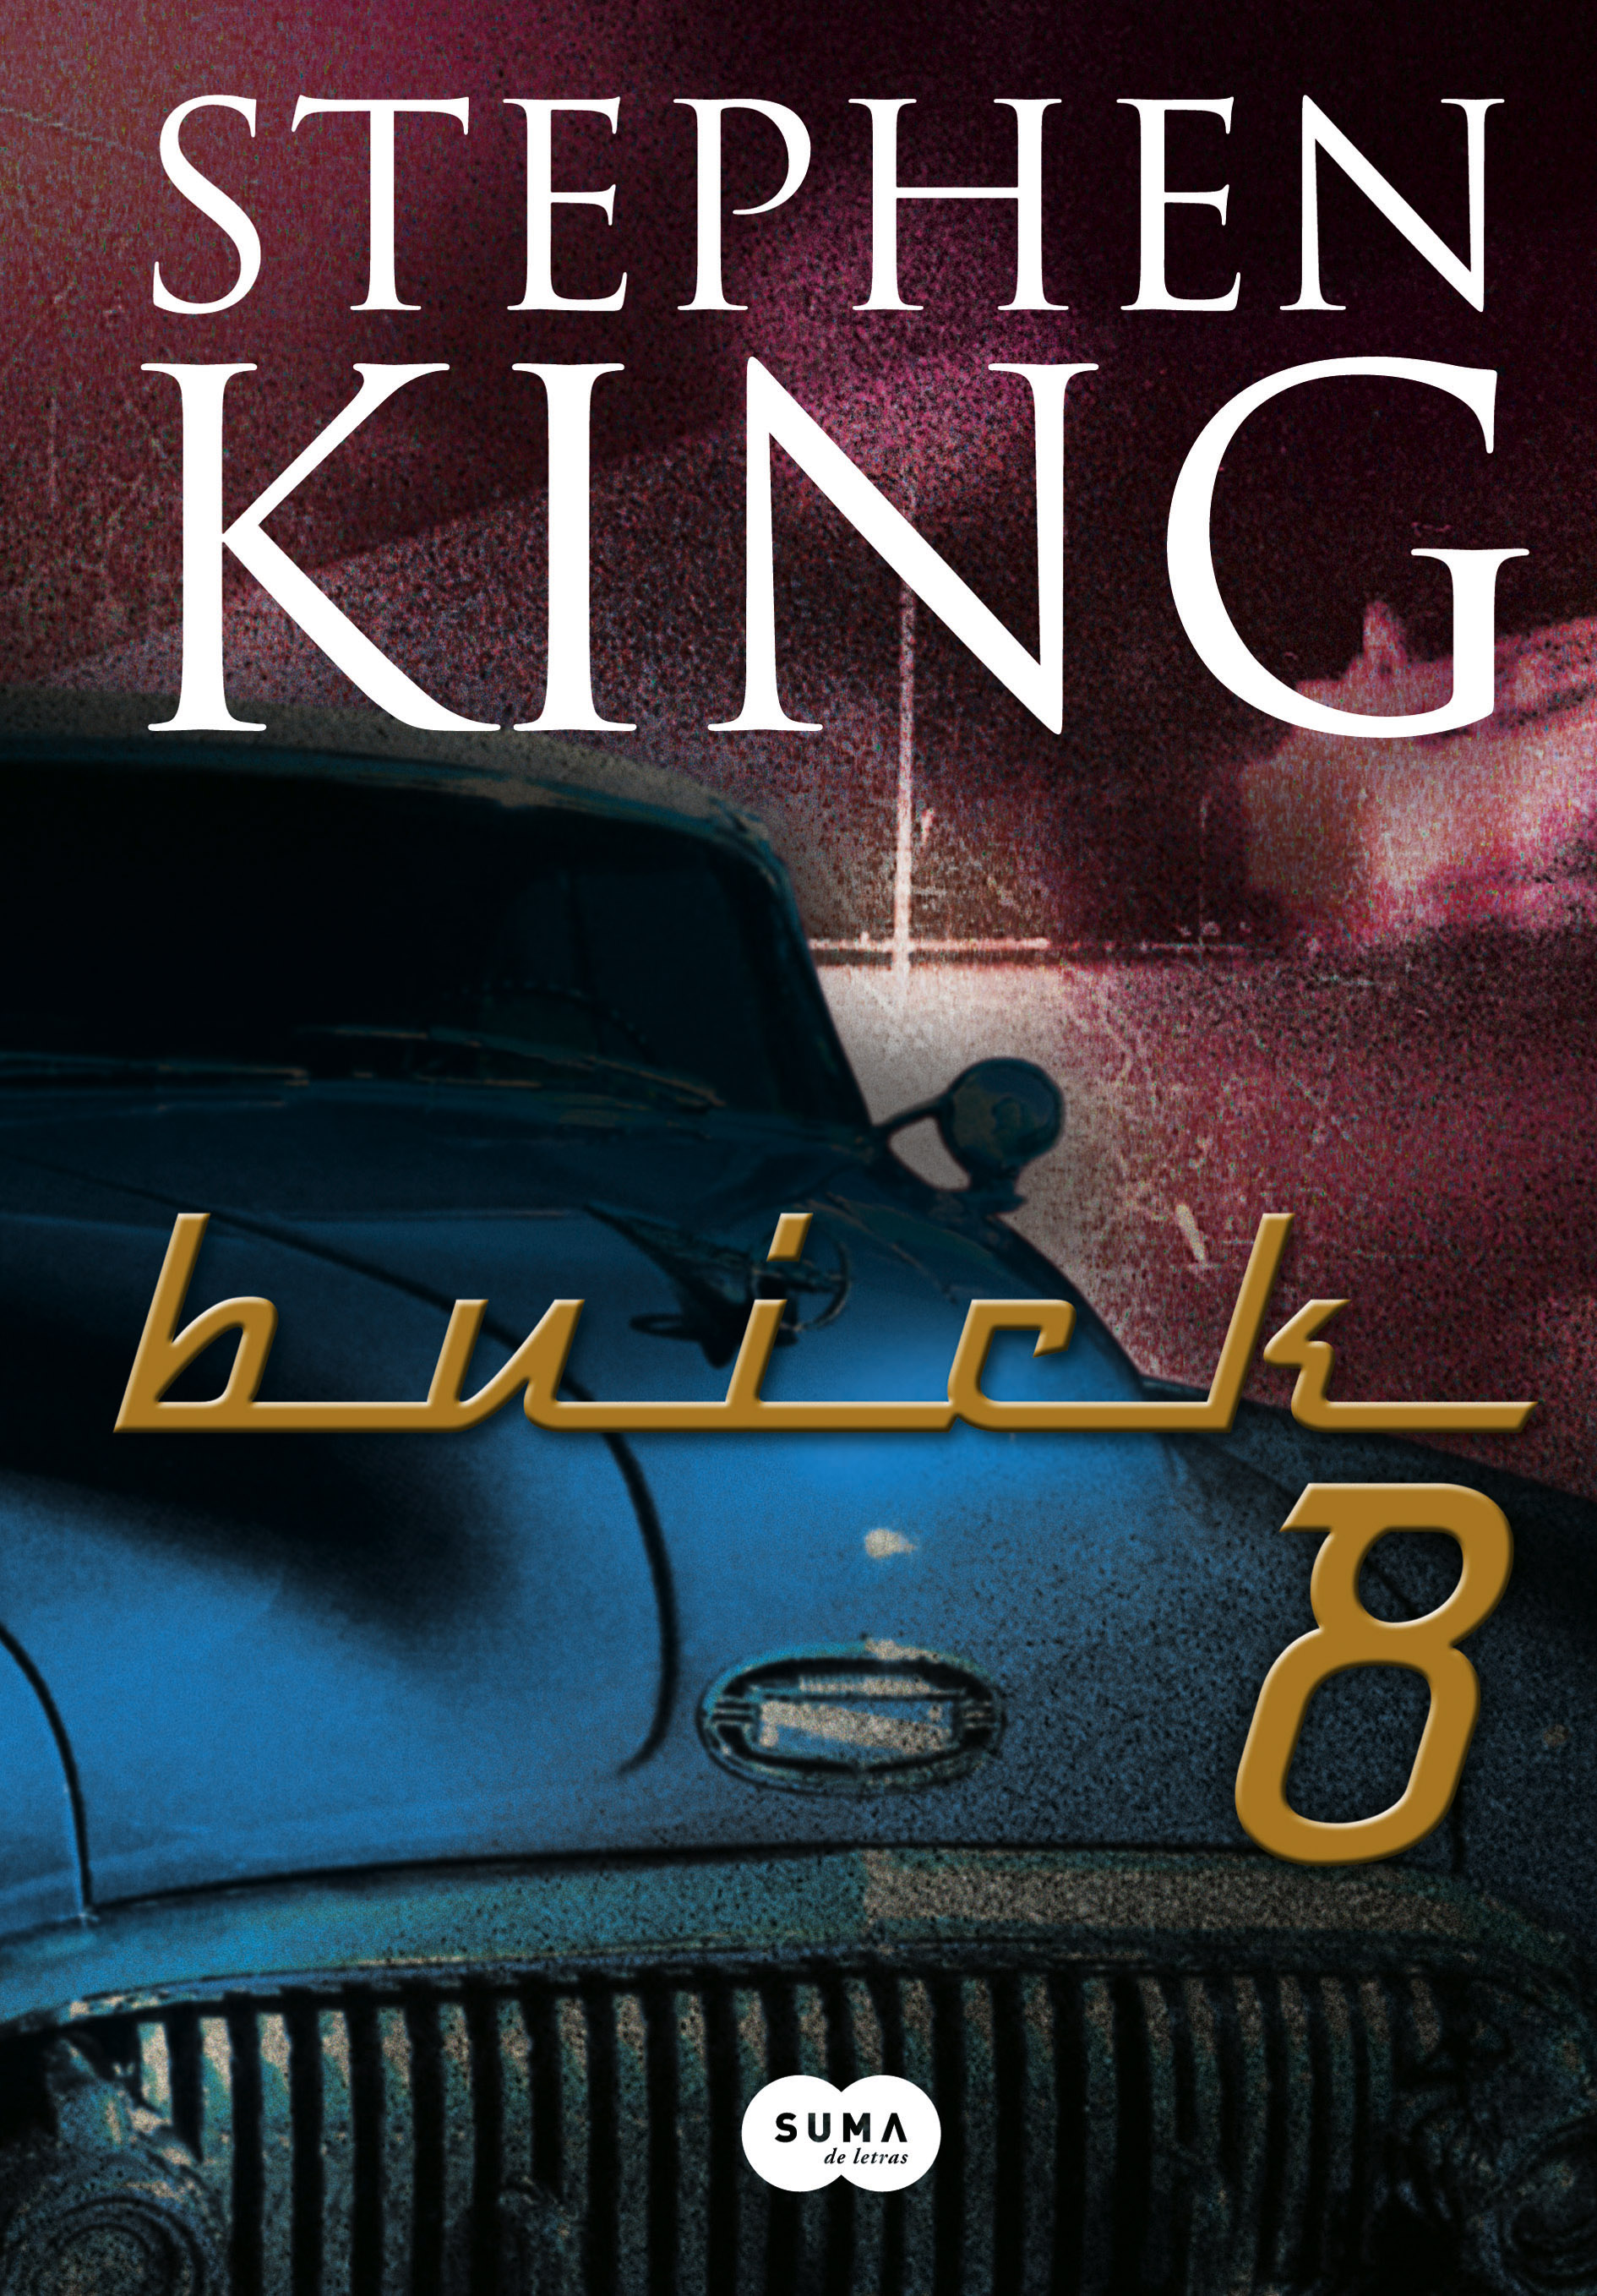 Capa Buick 8.indd